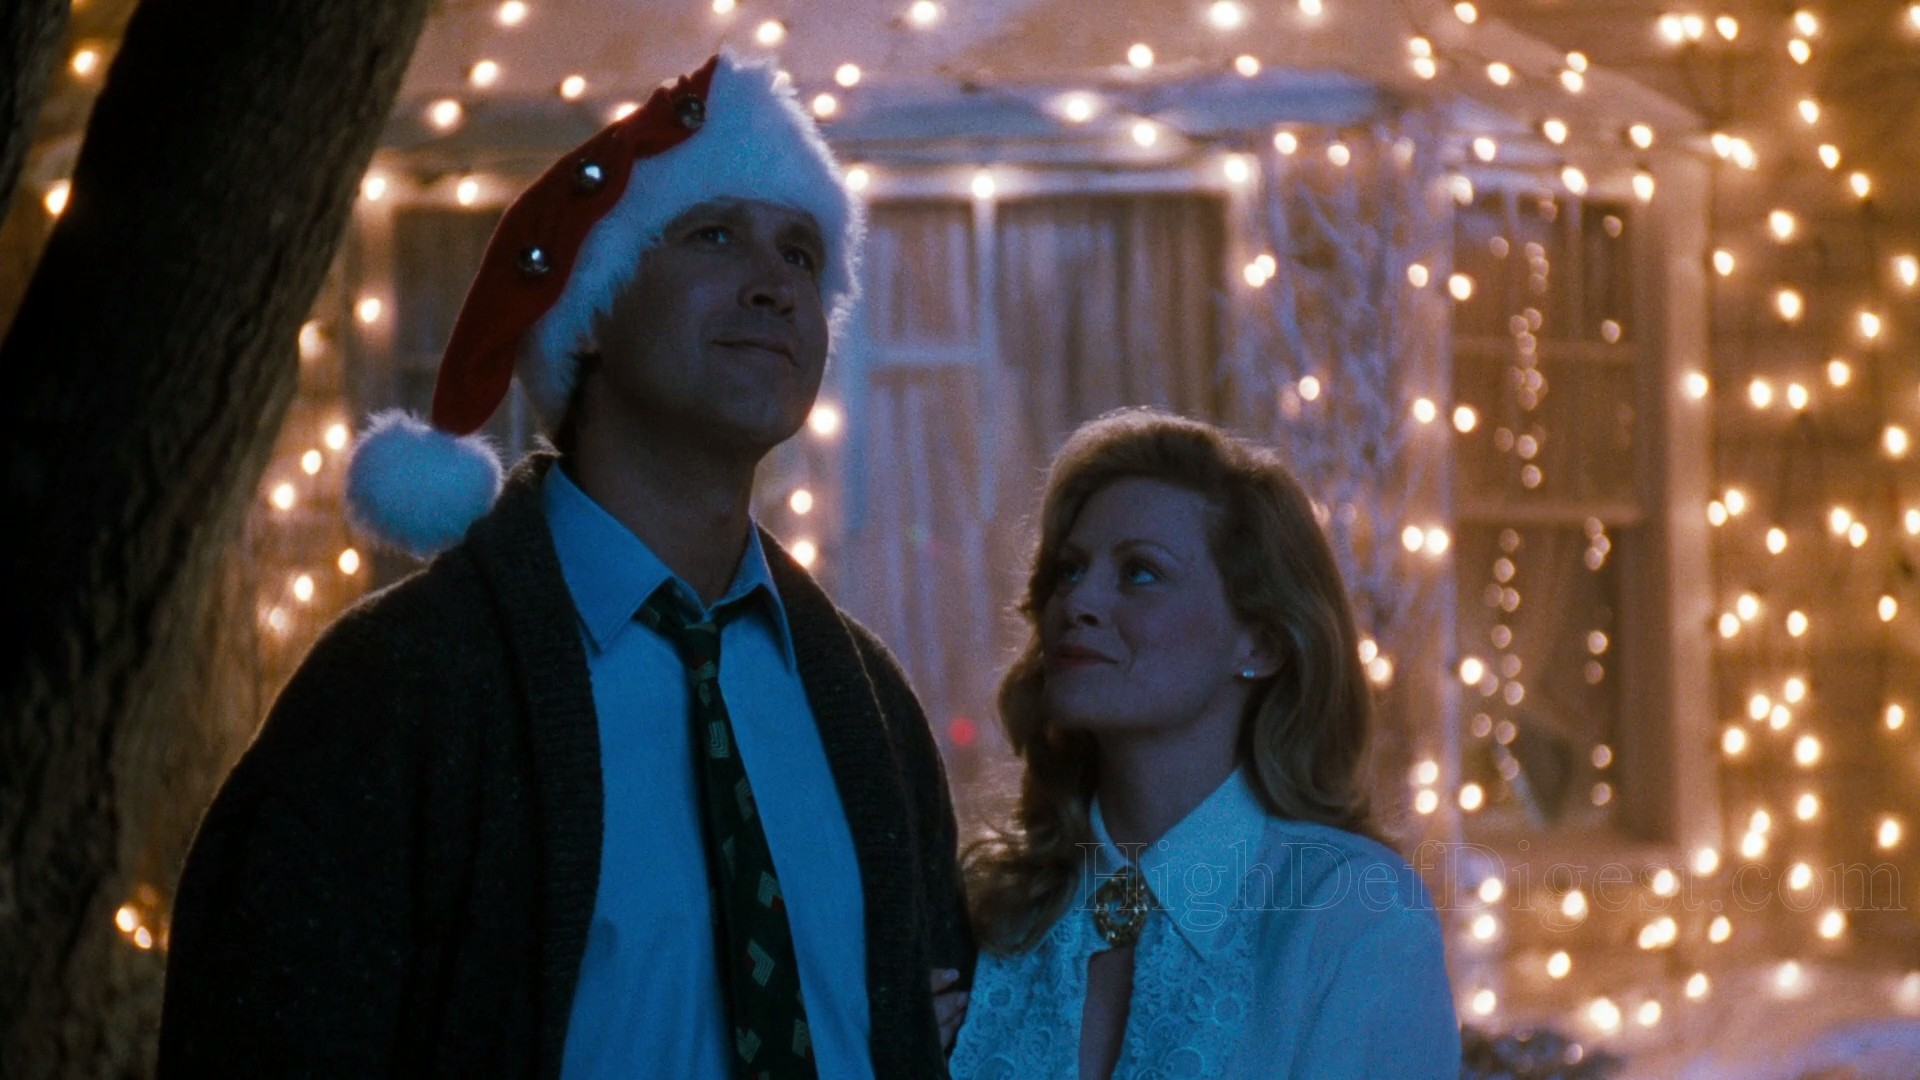 Over the years, 'National Lampoon's Christmas Vacation' has amassed a  strong following to become a modern holiday classic and a traditional watch  for the …